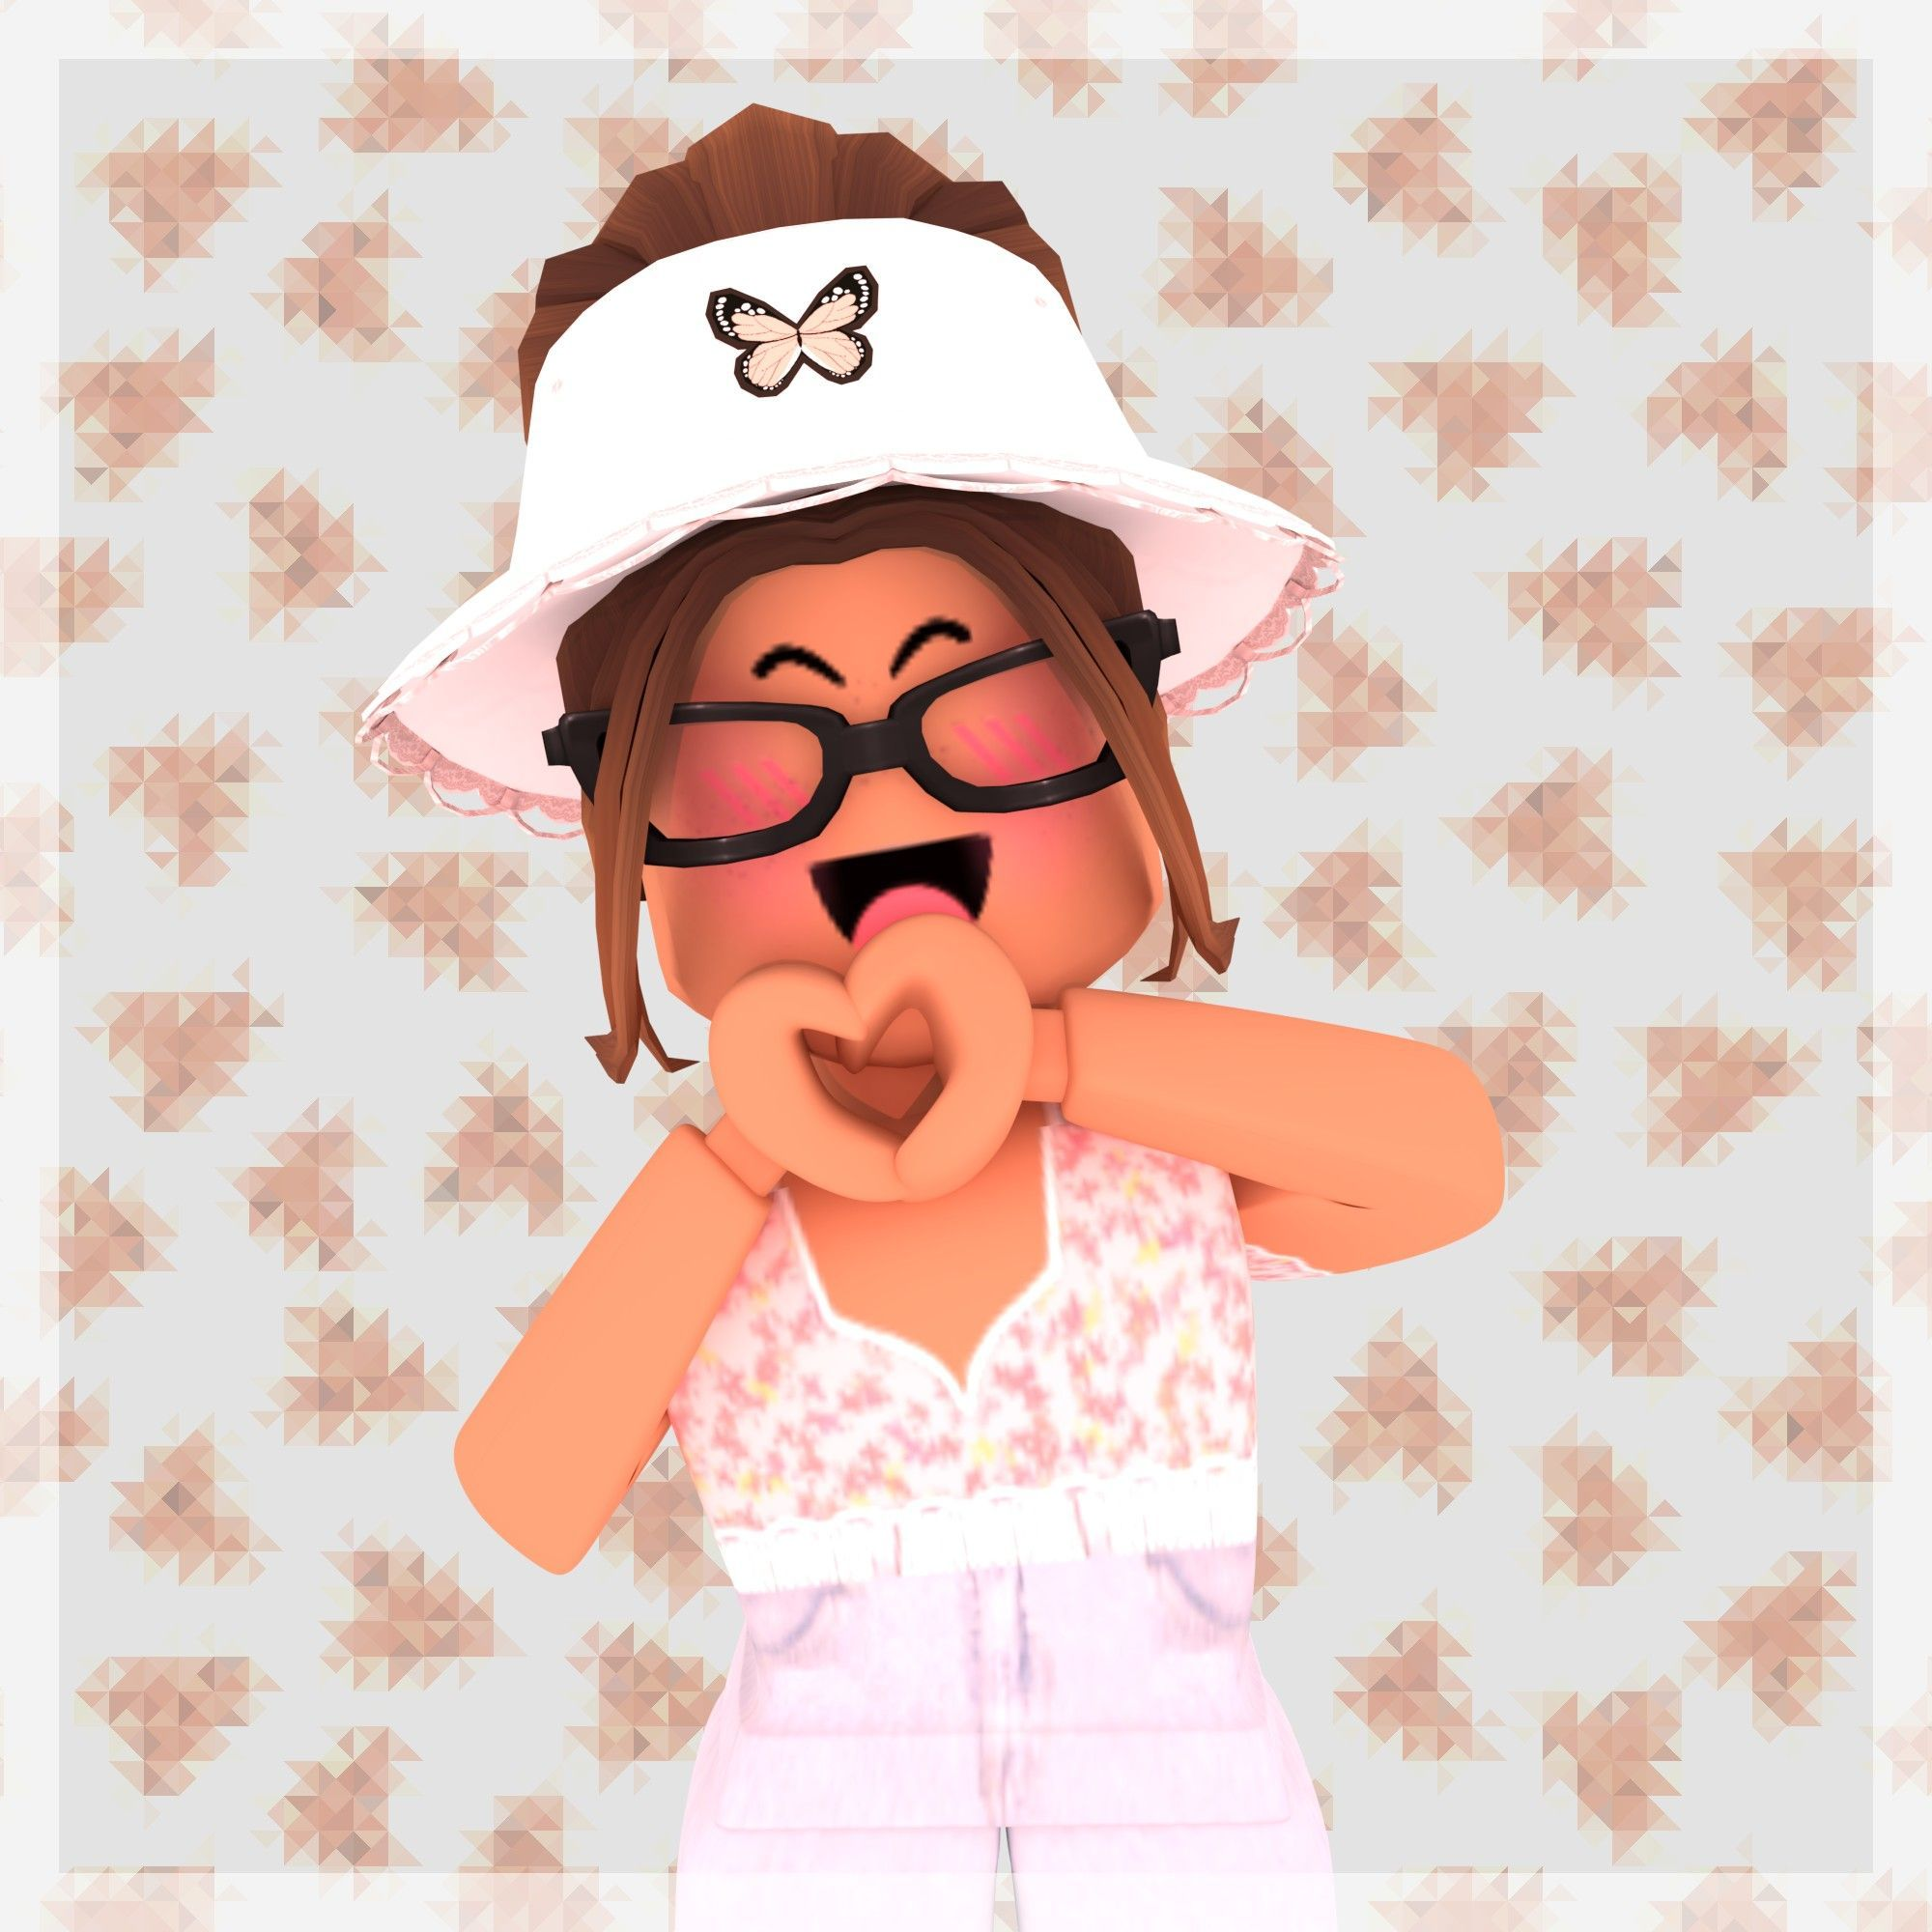 Pin By Jomana Hesham On Roblox Black Hair Roblox Roblox Pictures Roblox Animation